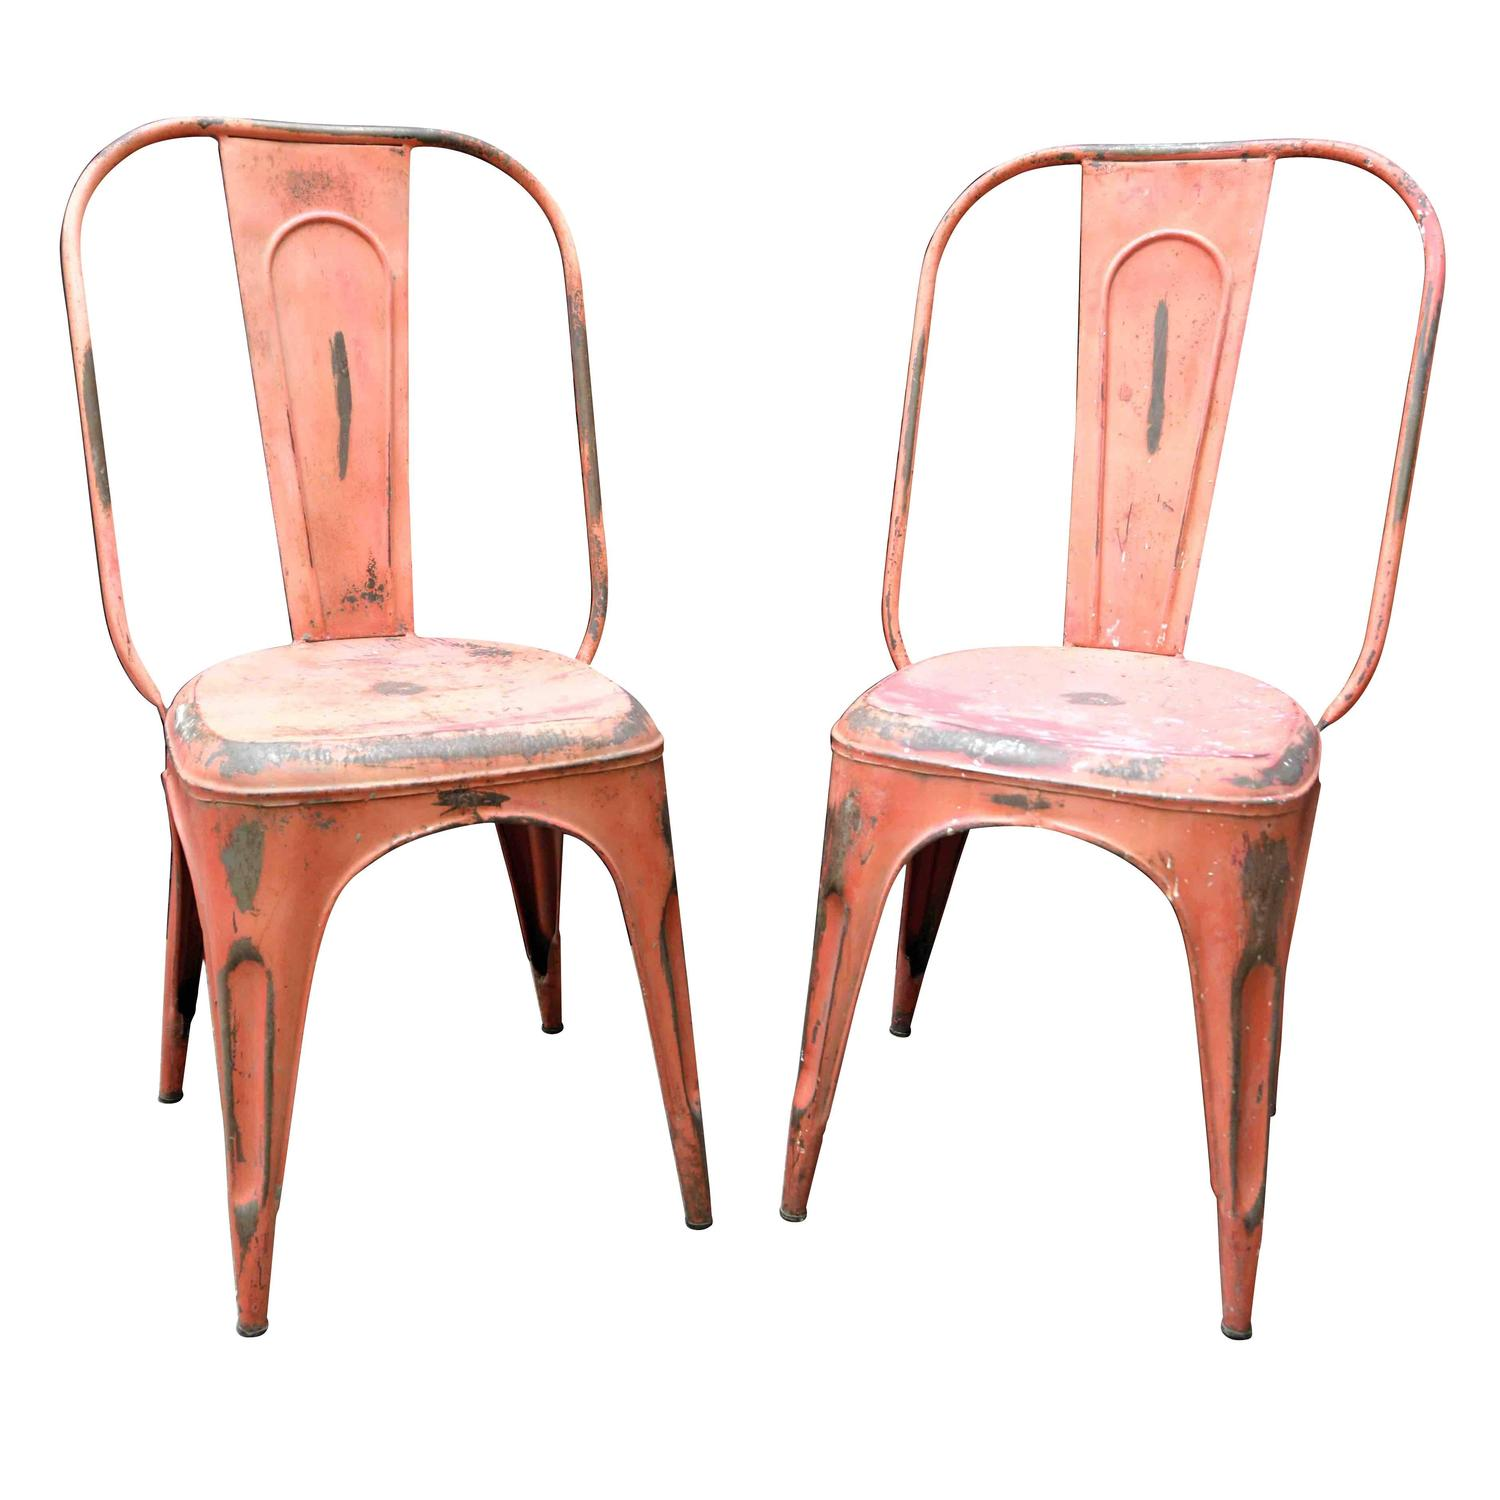 Cafe Chairs For Sale 1950s French Metal Industrial Stacking Café Bistro Chairs